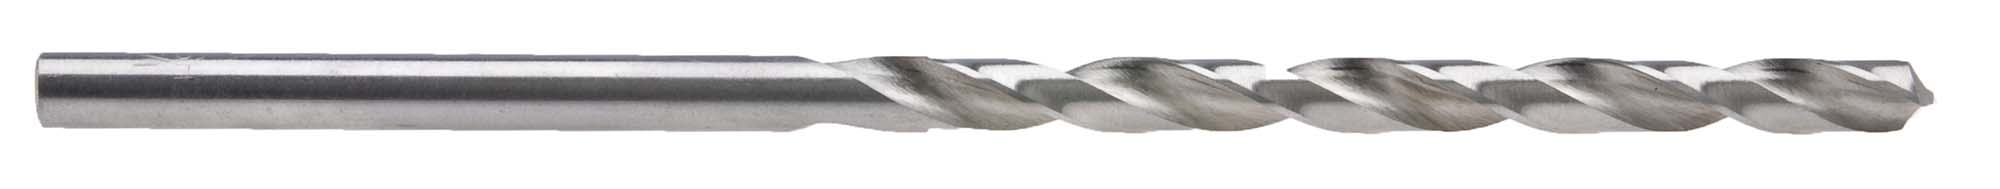 "E (.250"") ""Taper Length"" Long Straight Shank Drill Bit, High Speed Steel"